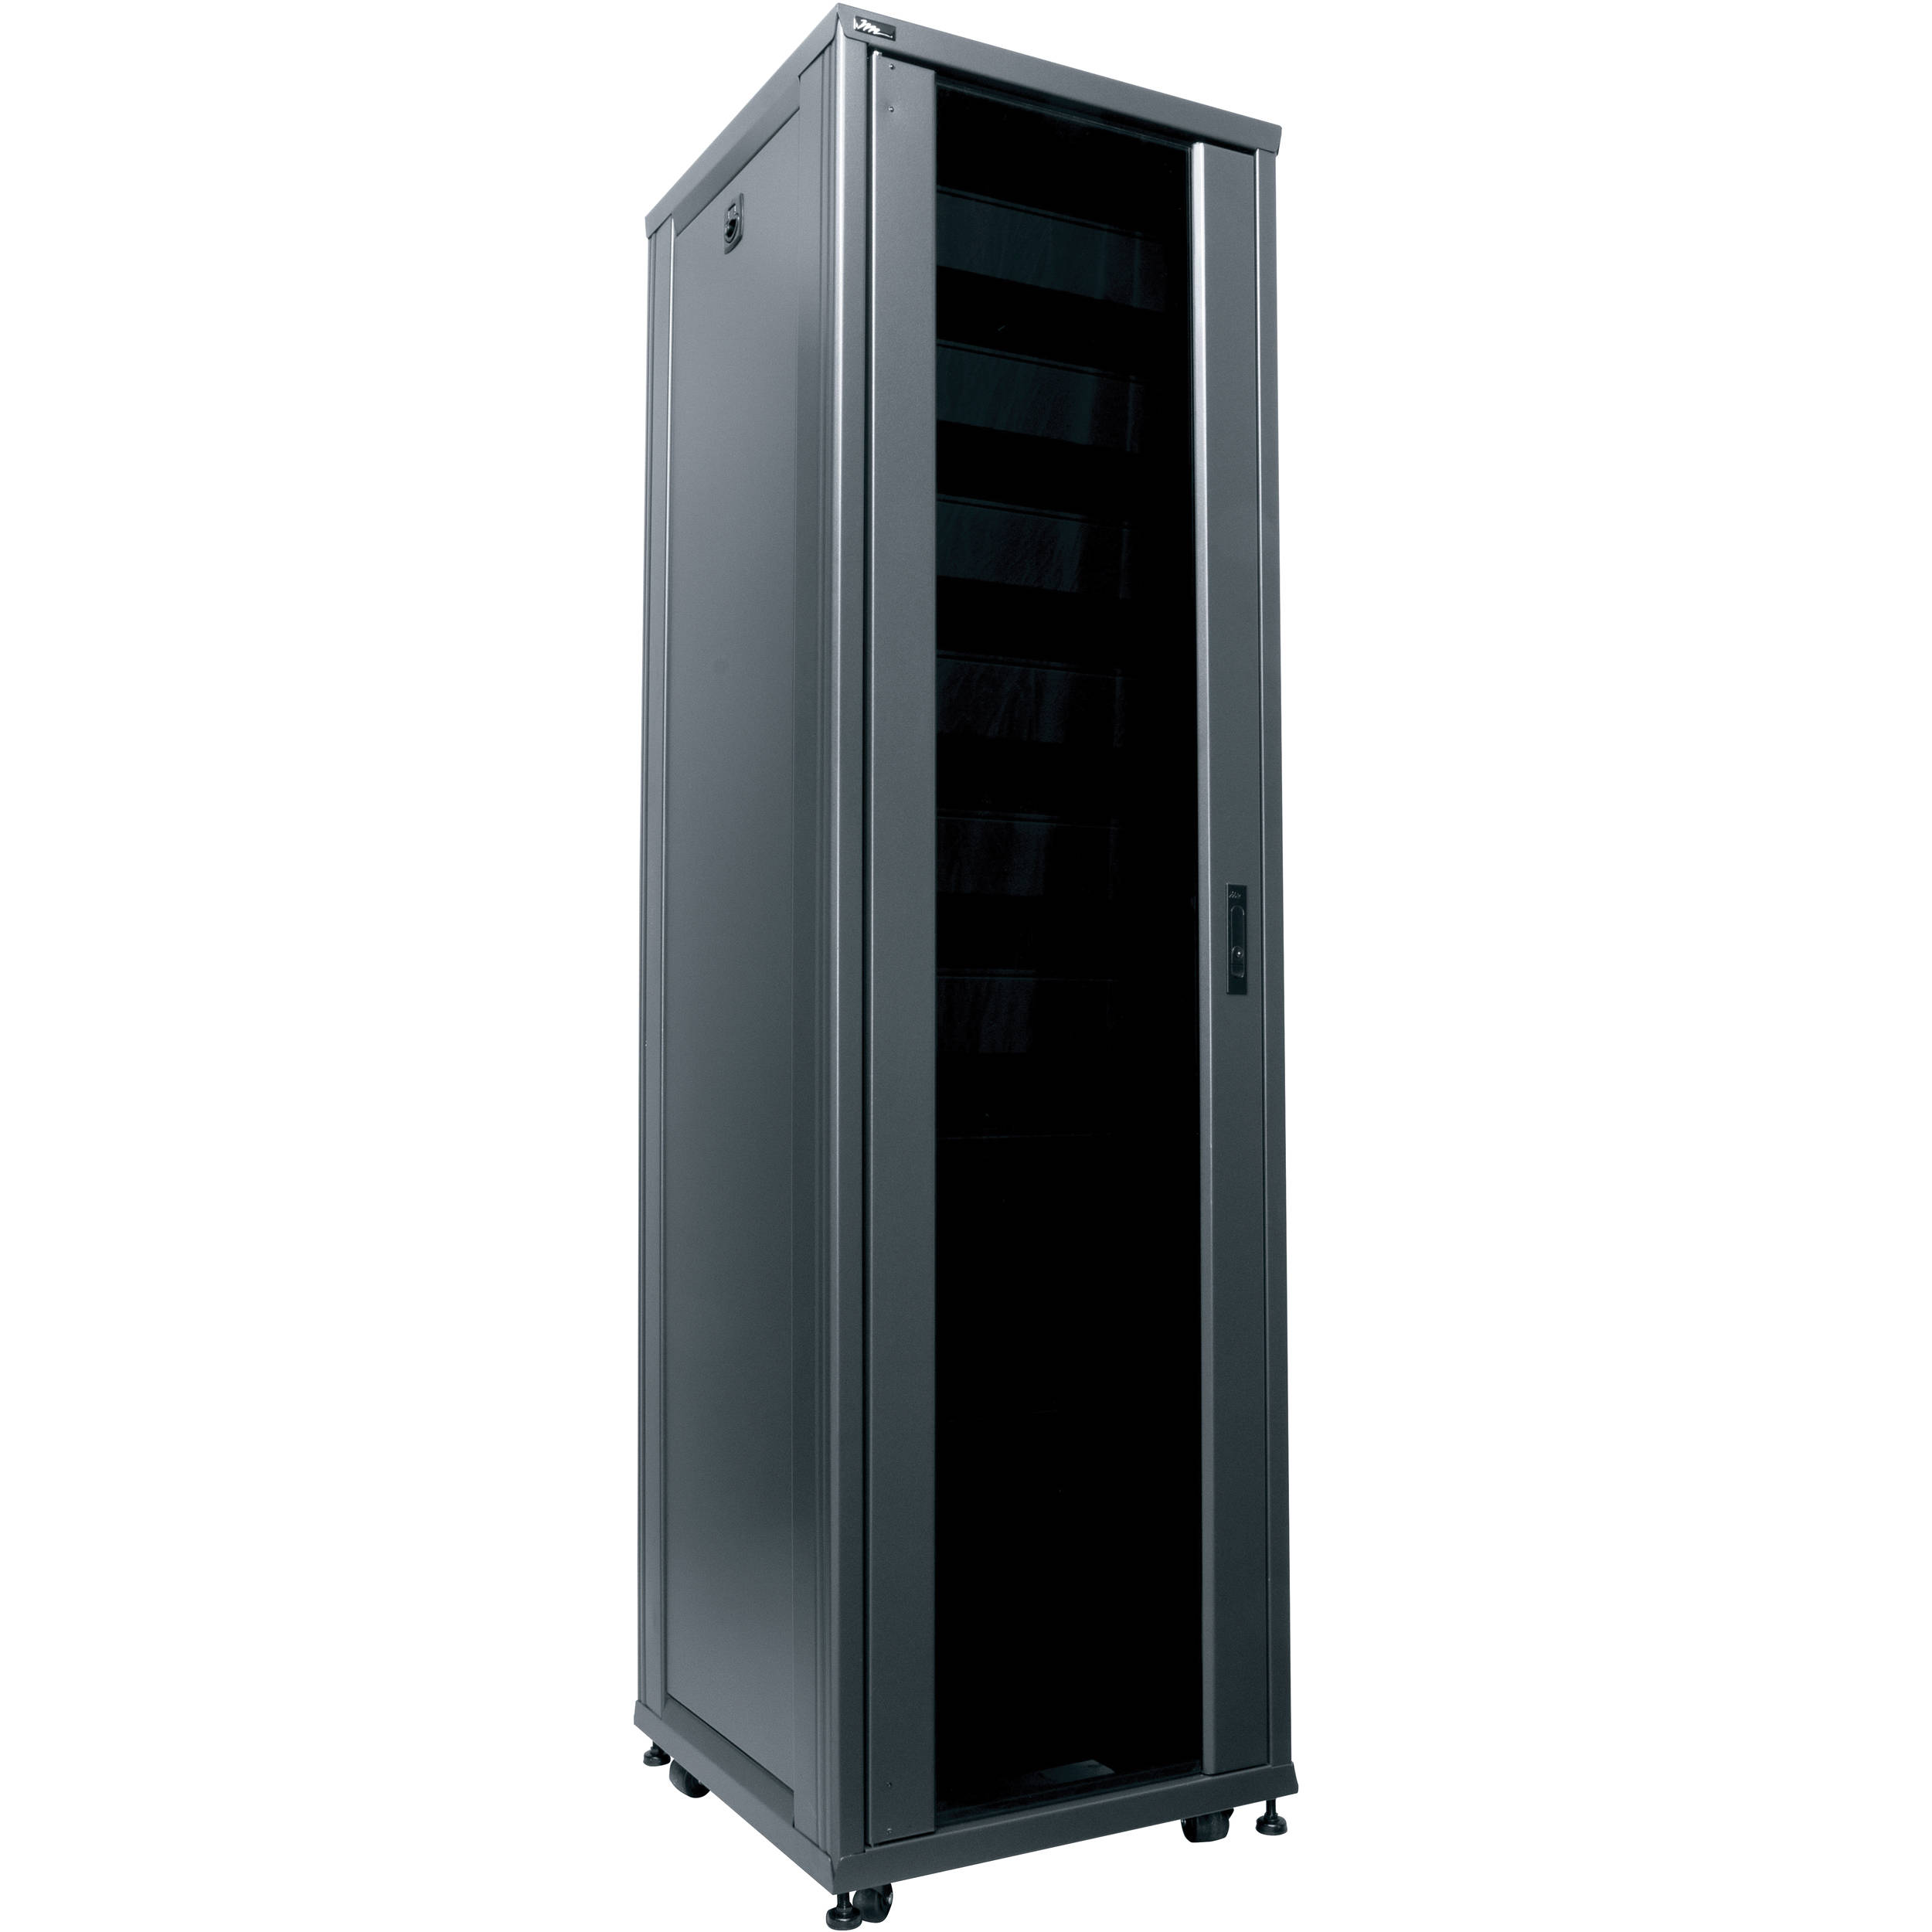 Charmant Middle Atlantic RCS 42 Rack Residential Configured System